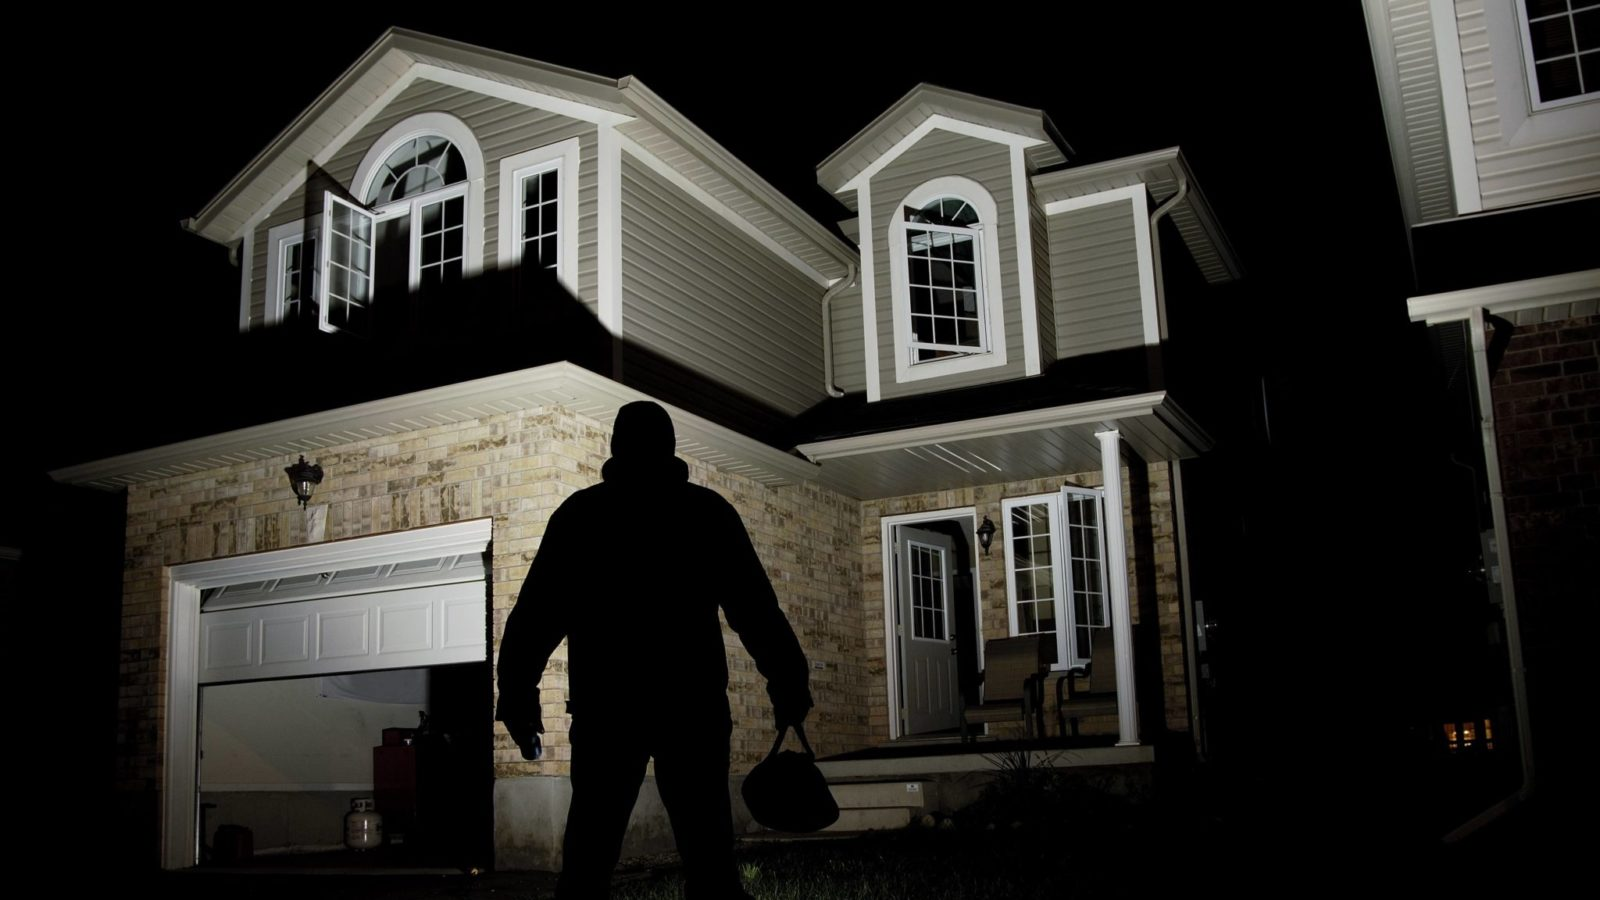 Burglar looking at a home.